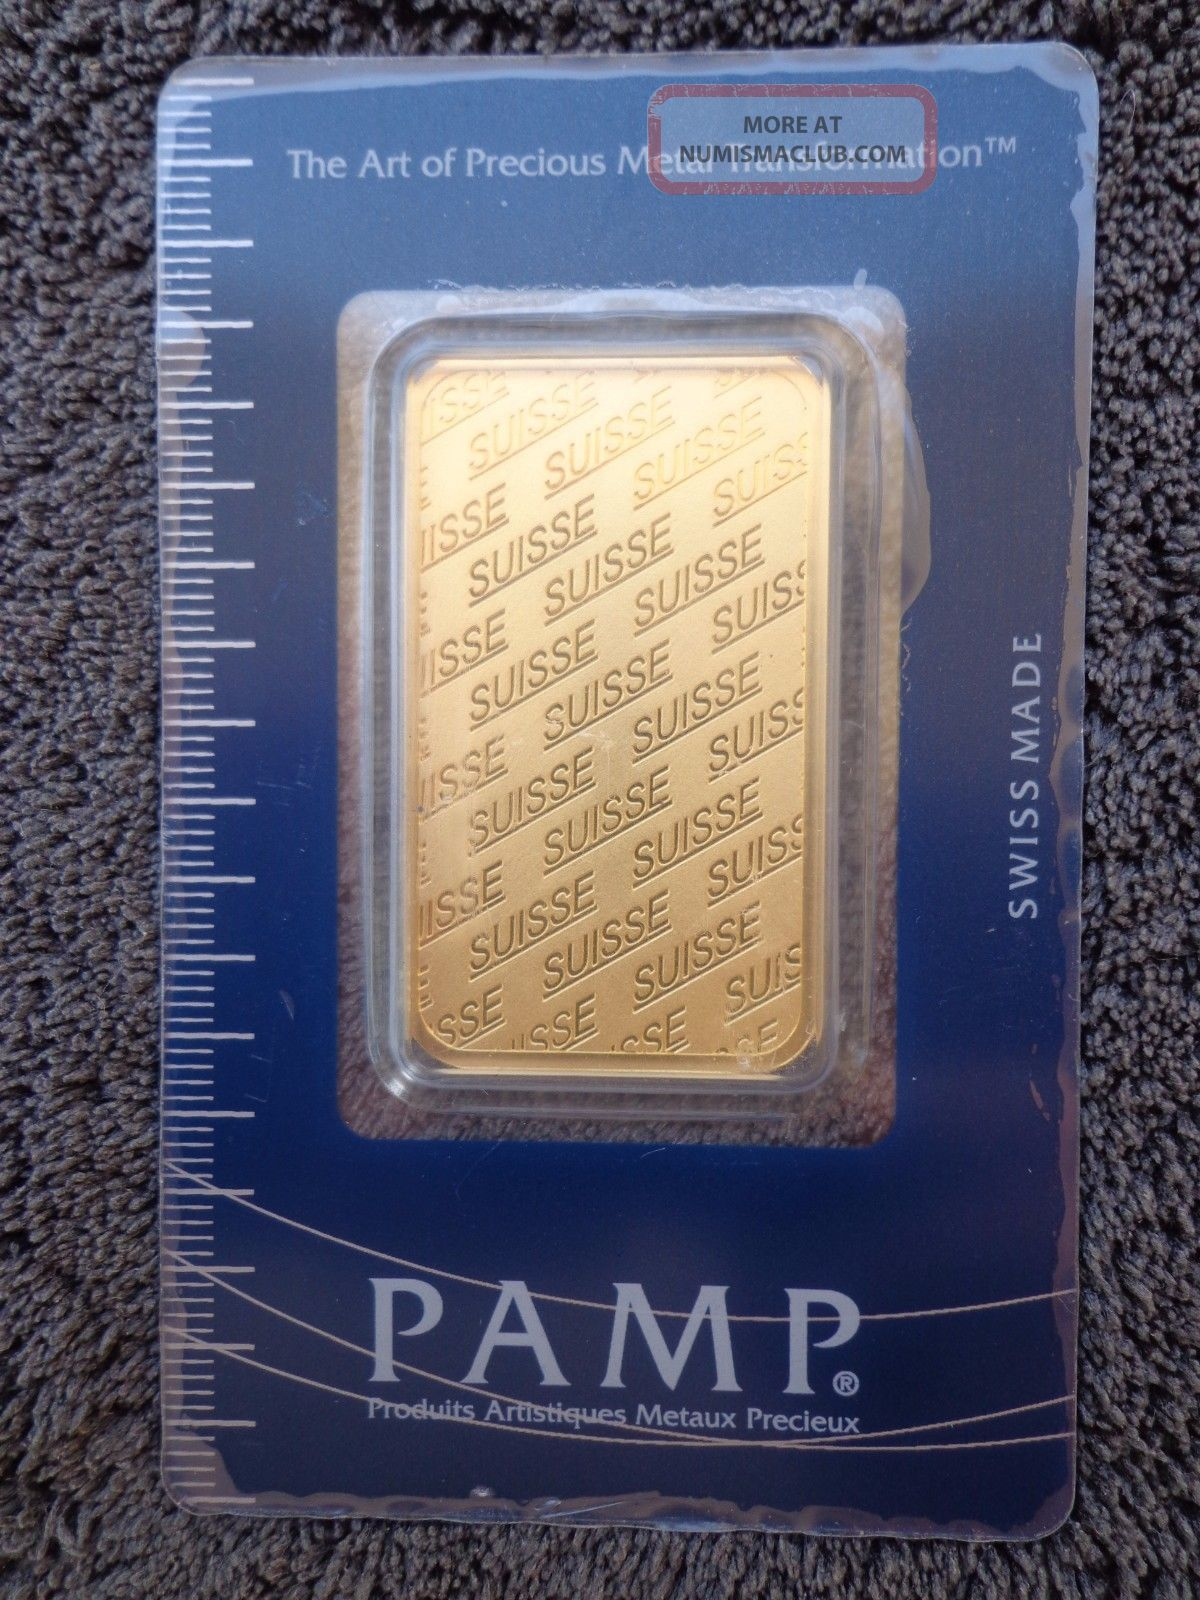 1 Oz Pamp Suisse Gold Bar.  9999 Fine Gold With Assay Cert Gold photo